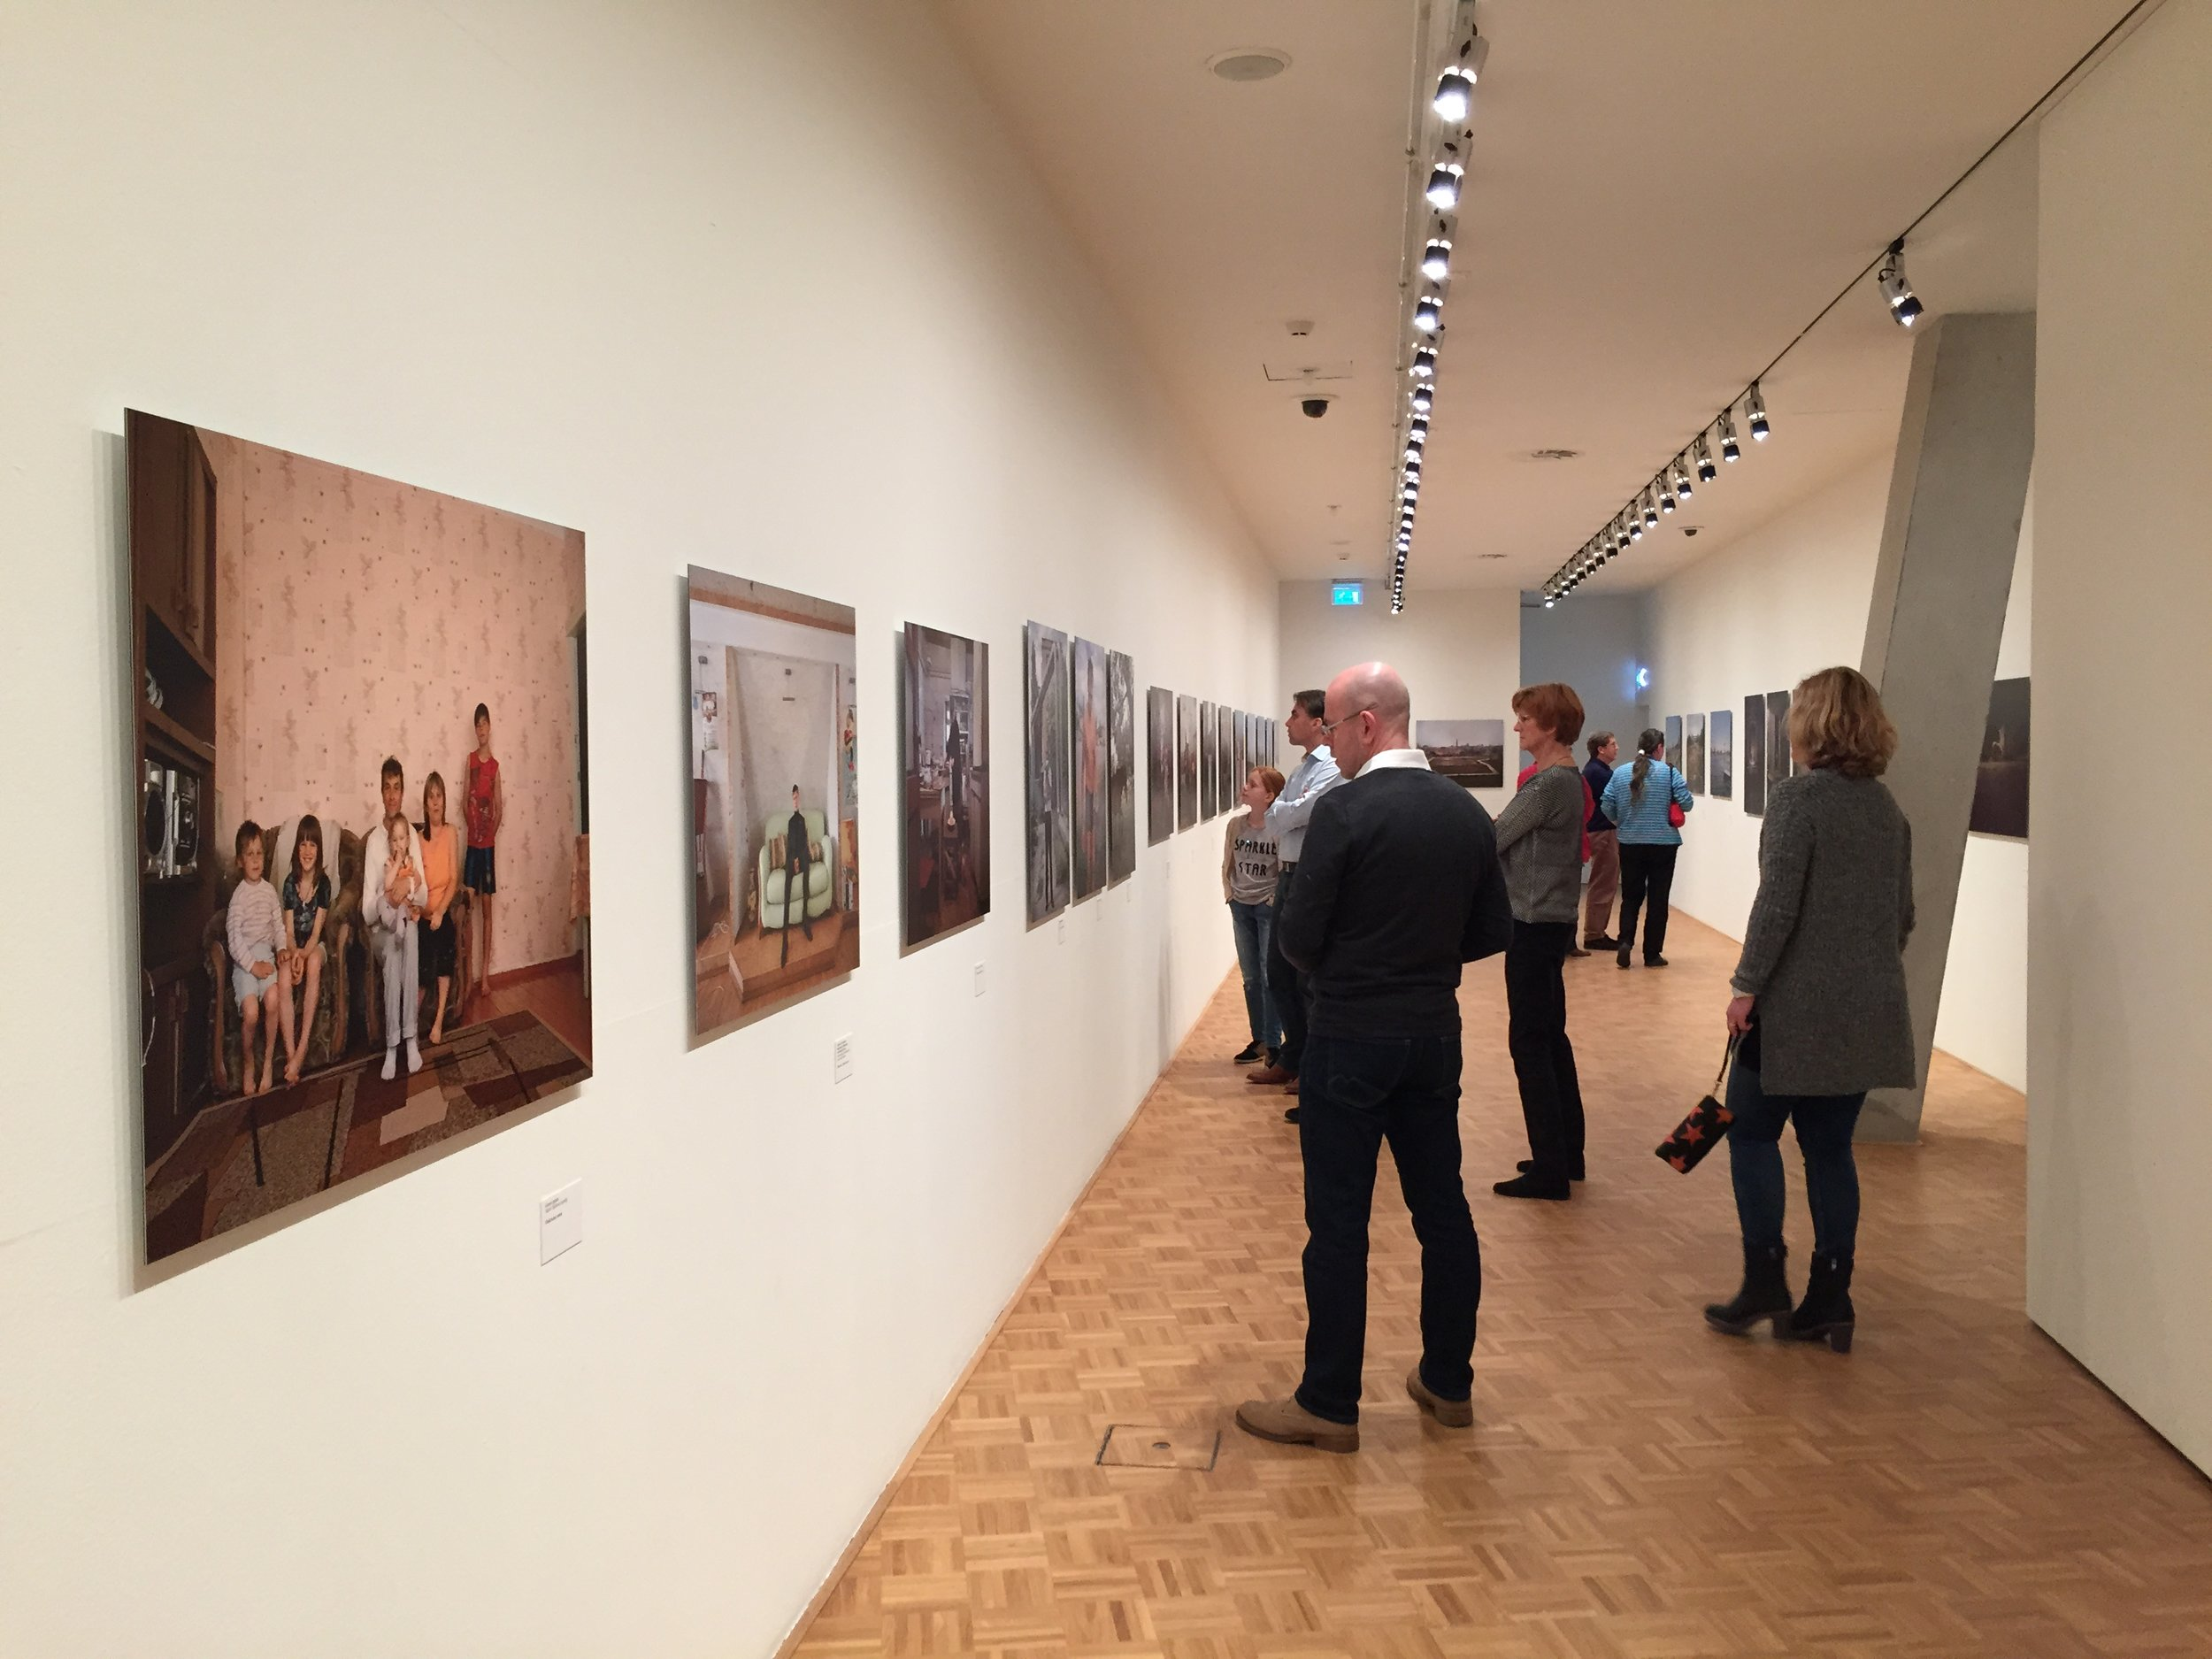 Exhibition at the Kunsthal, Rotterdam